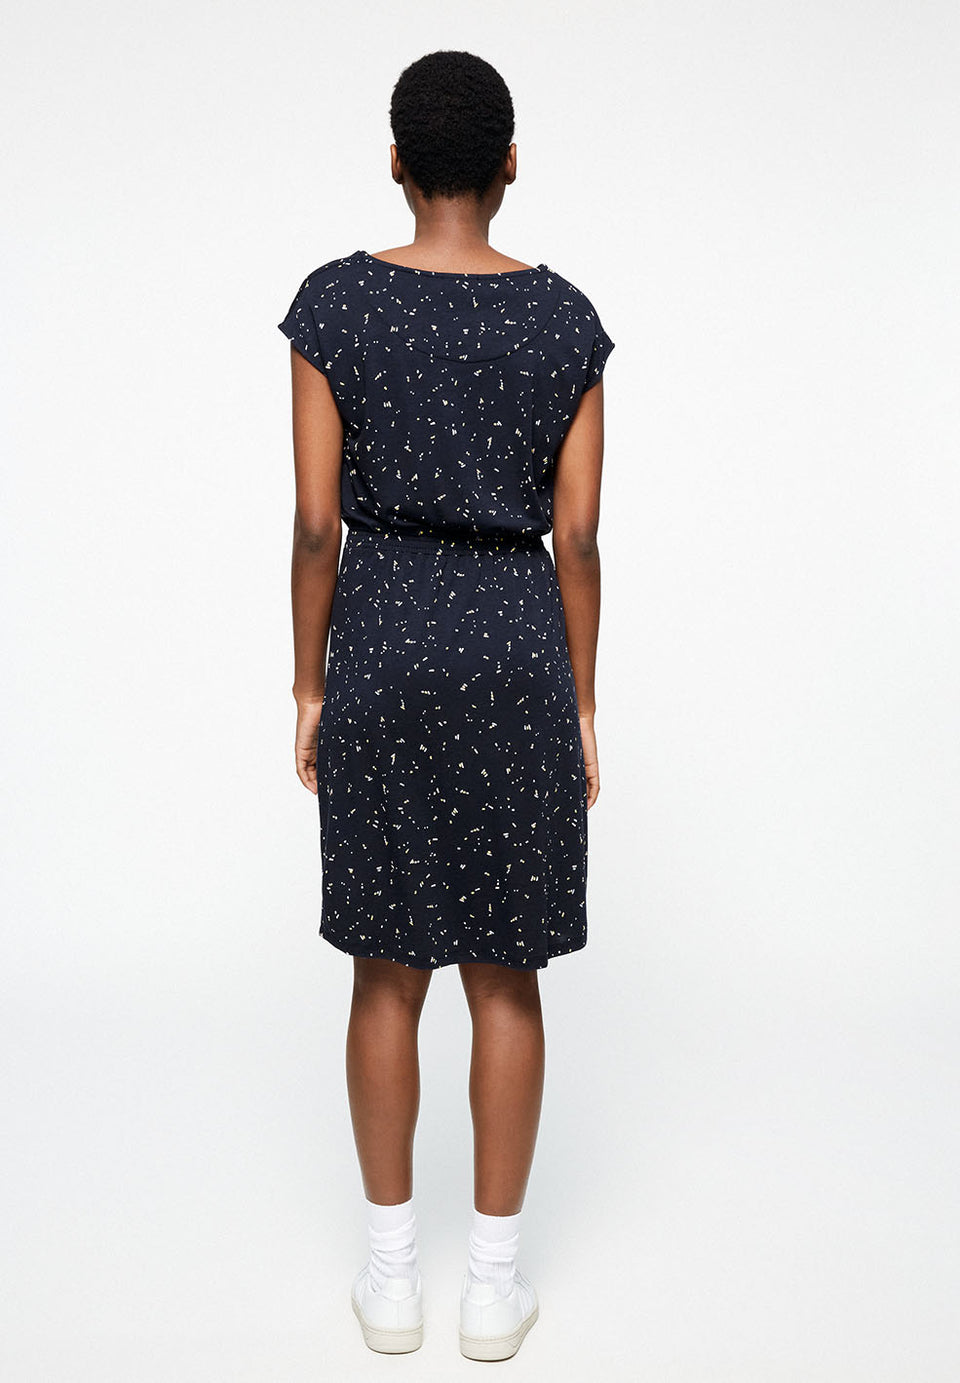 Sonjaa Firefly Dress in Navy